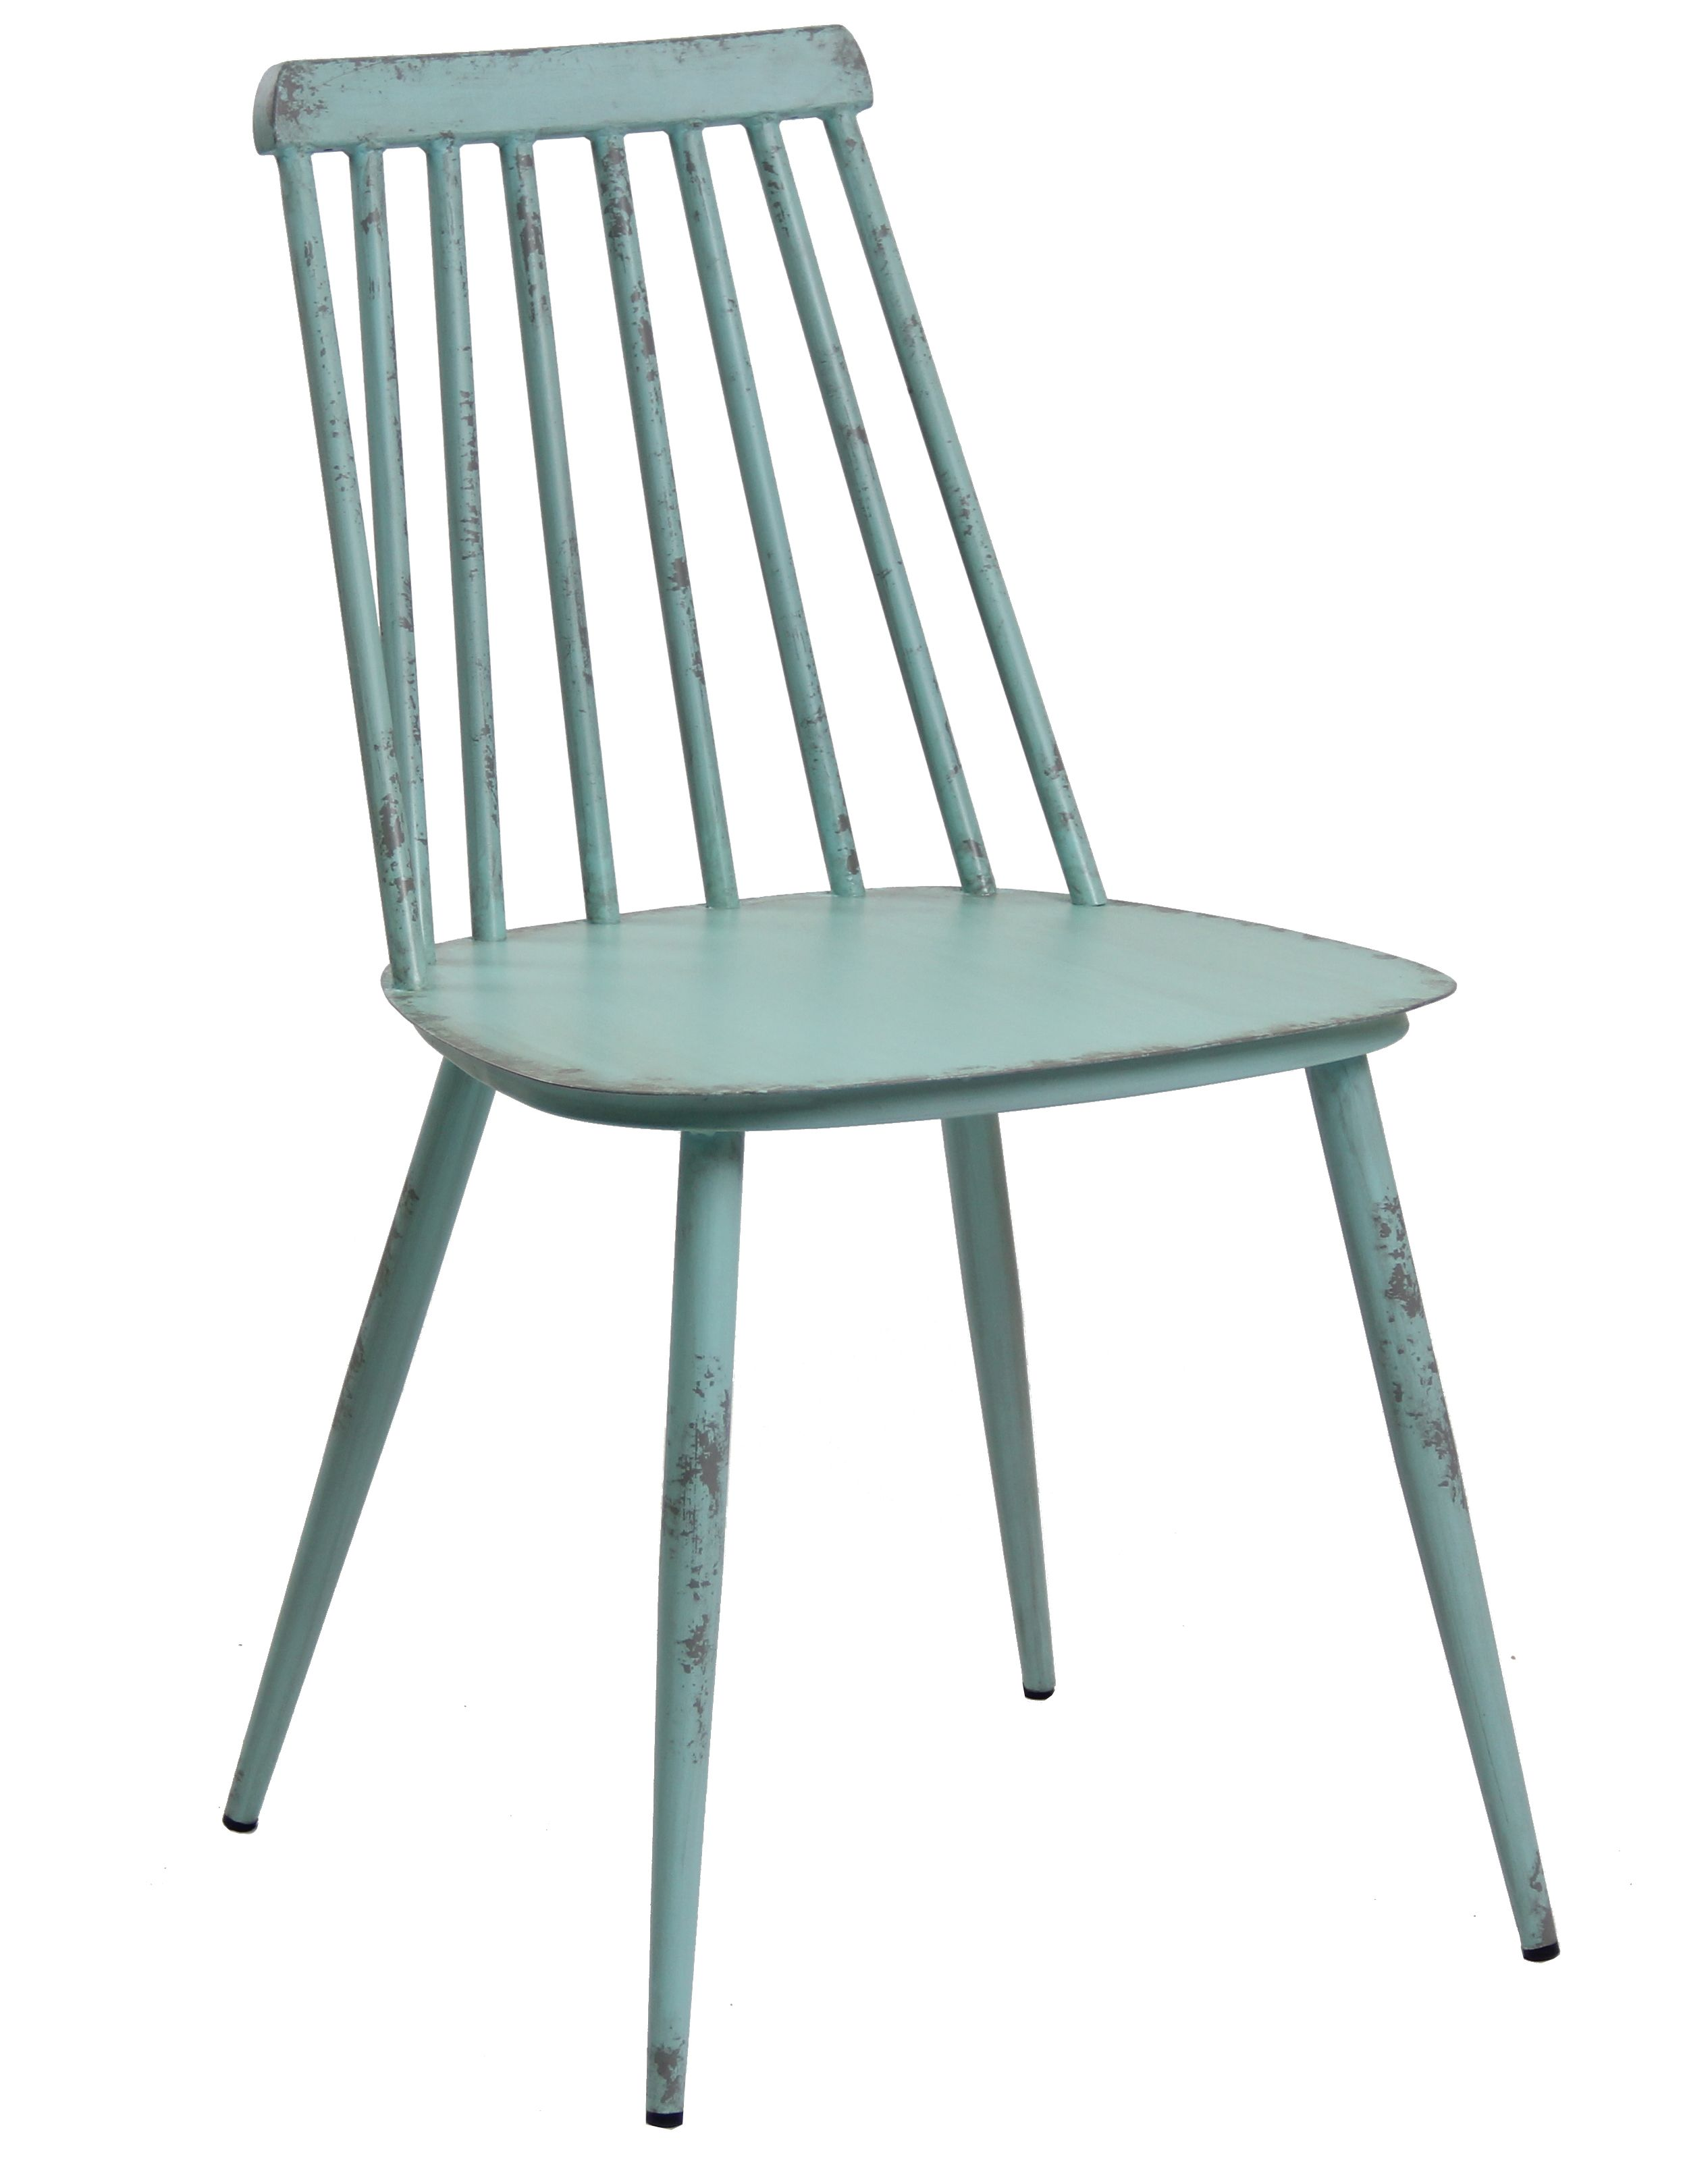 Aluminium Dinning Chair Retro Blue Set of 2